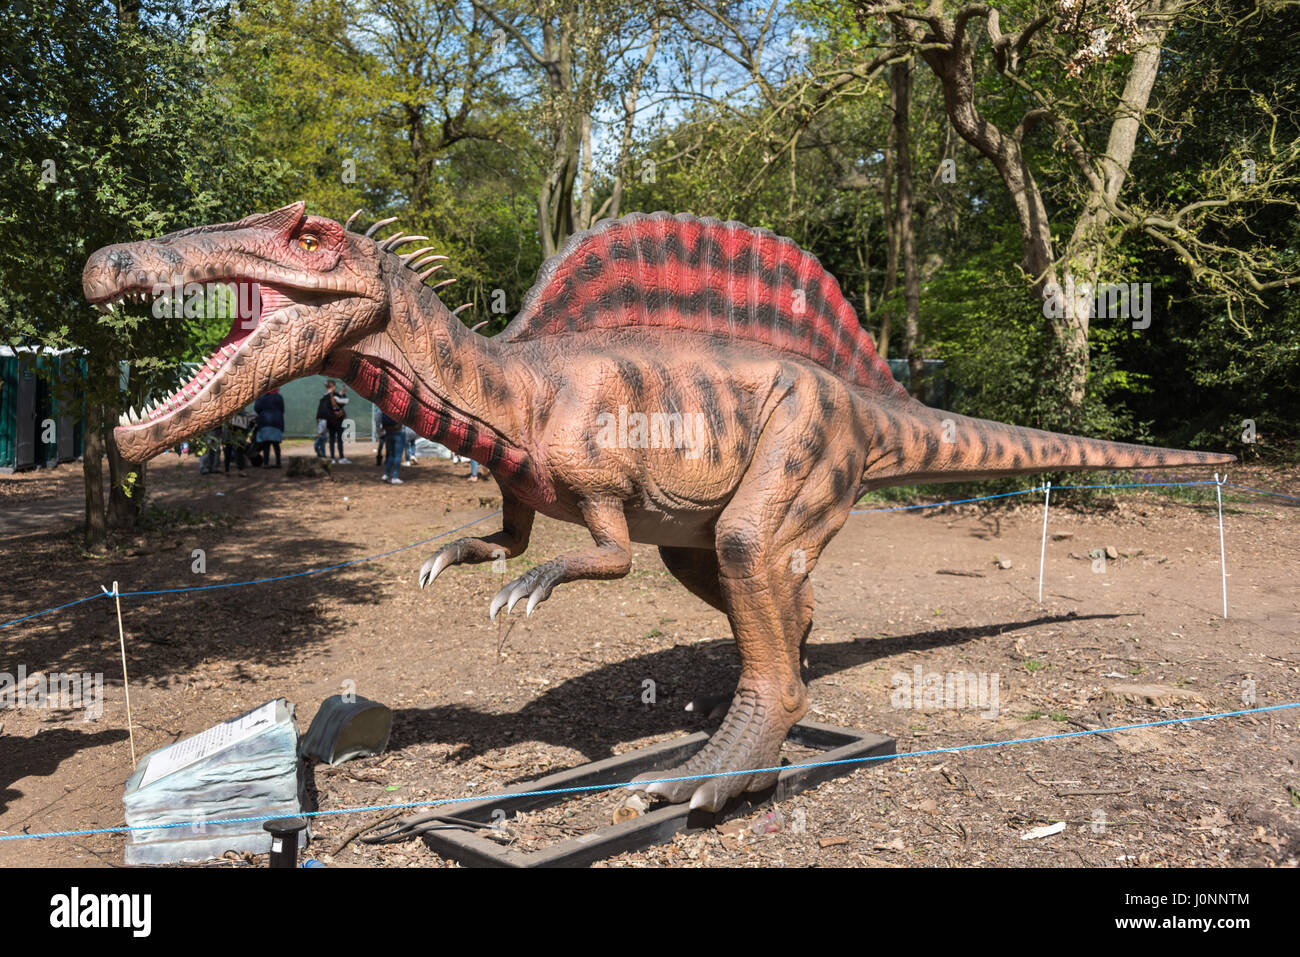 Spinosaurus, Jurassic Kingdom, Osterley Park, London - Stock Image